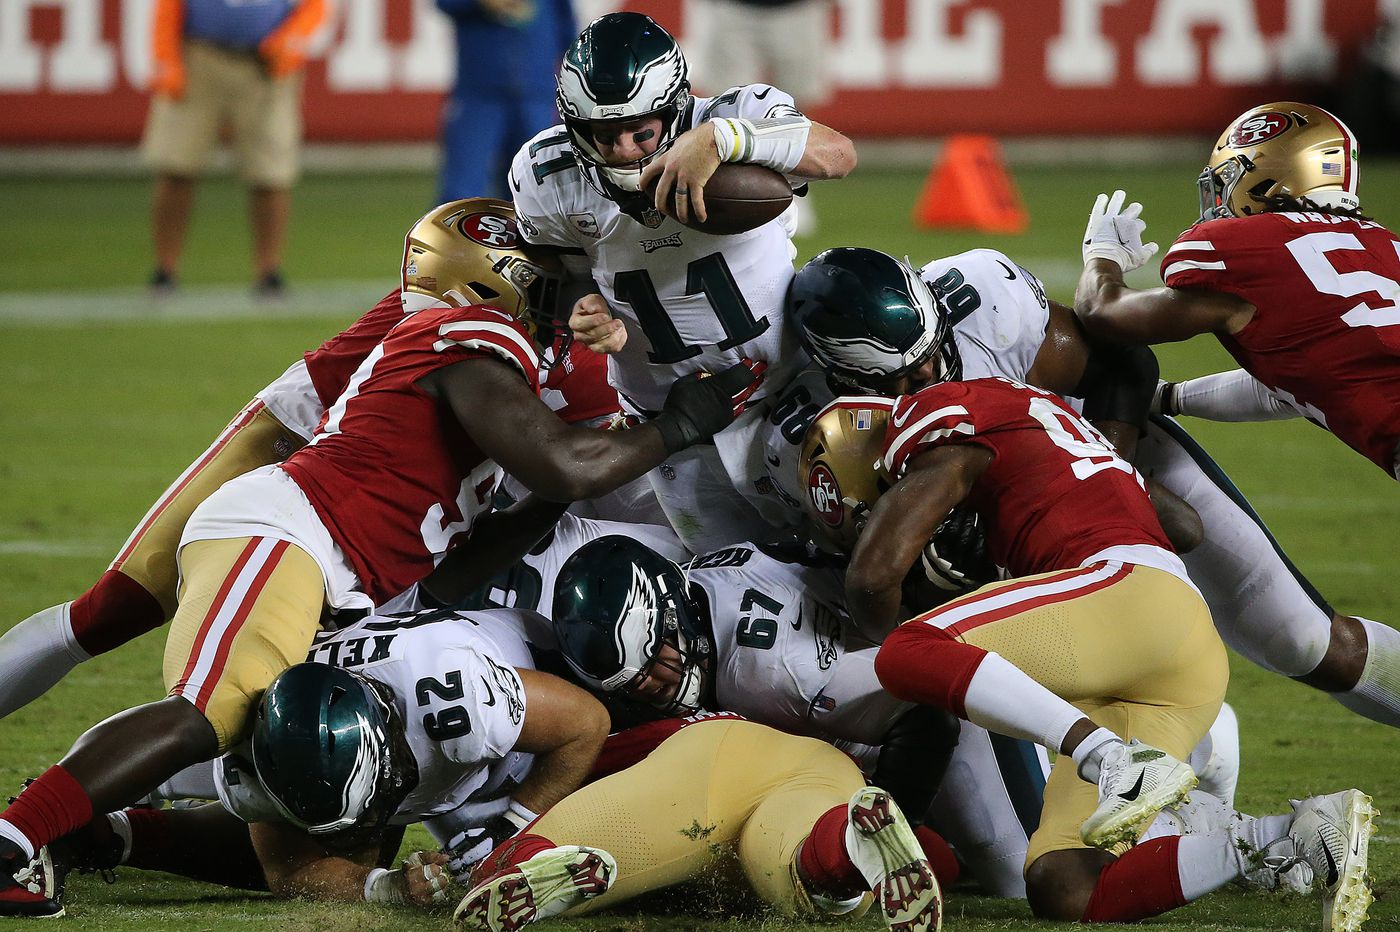 Good news for the Eagles: They beat the 49ers. Better news: The NFC East stinks. | Mike Sielski